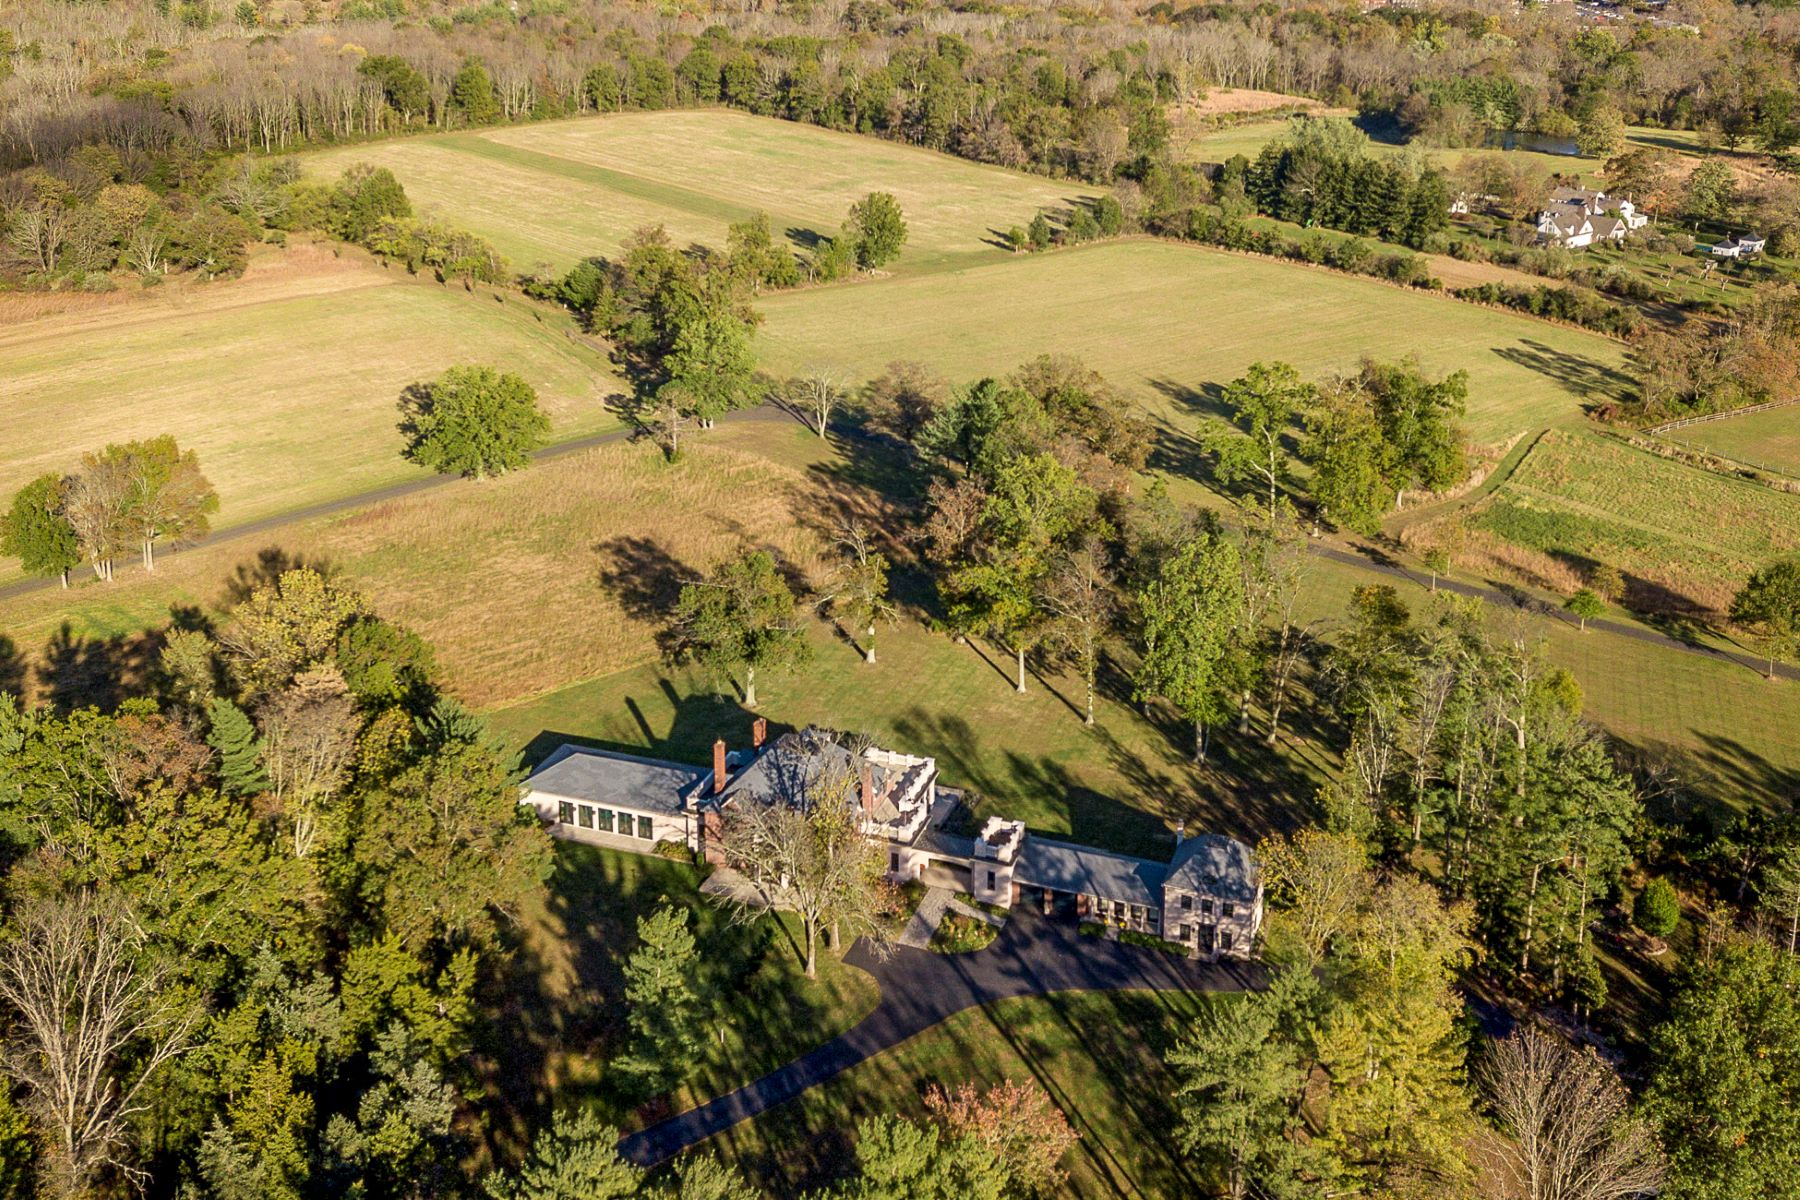 Property for Sale at Write the Next Chapter of This Chateau's Epic Tale 306 Carter Road, Princeton, New Jersey 08540 United States